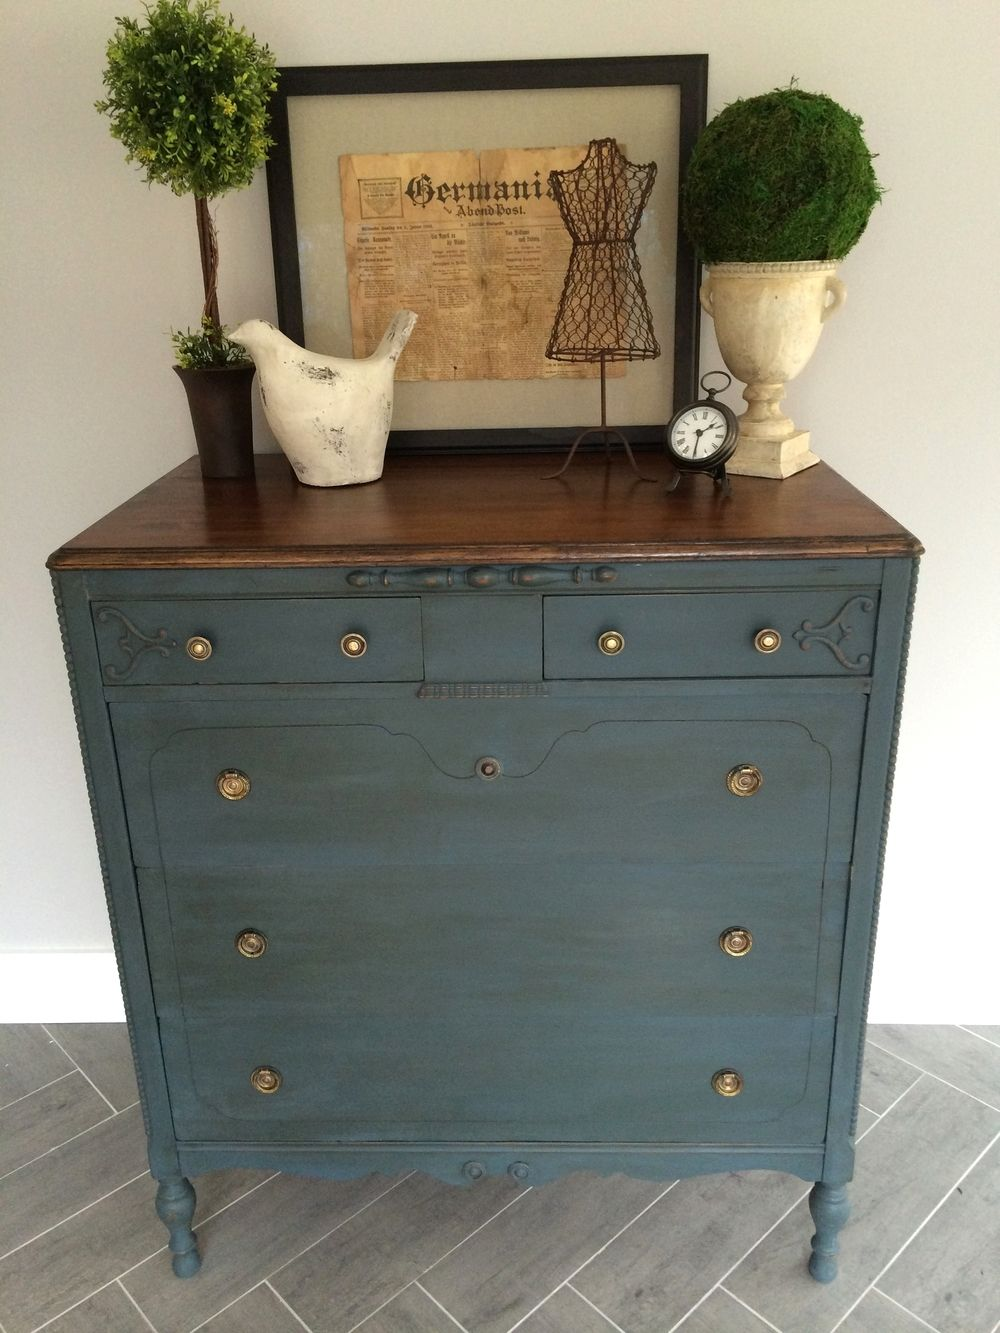 Repairing A Dresser Chalk Paint Furniture Blue Painted Dresser Painted Furniture